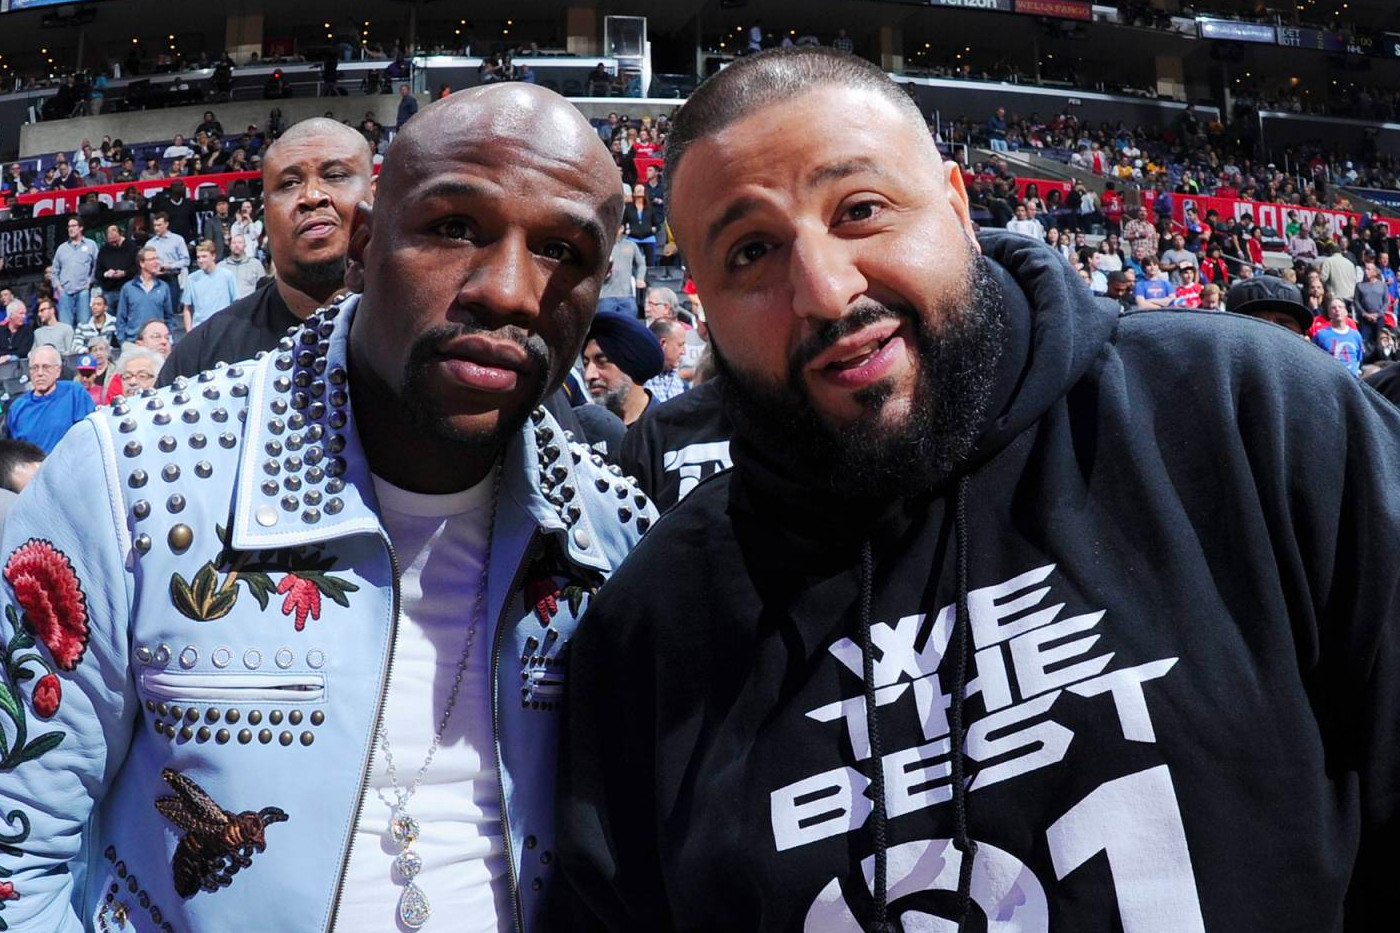 Floyd Mayweather and DJ Khaled charged with massive fines for promoting cryptocurrencies -